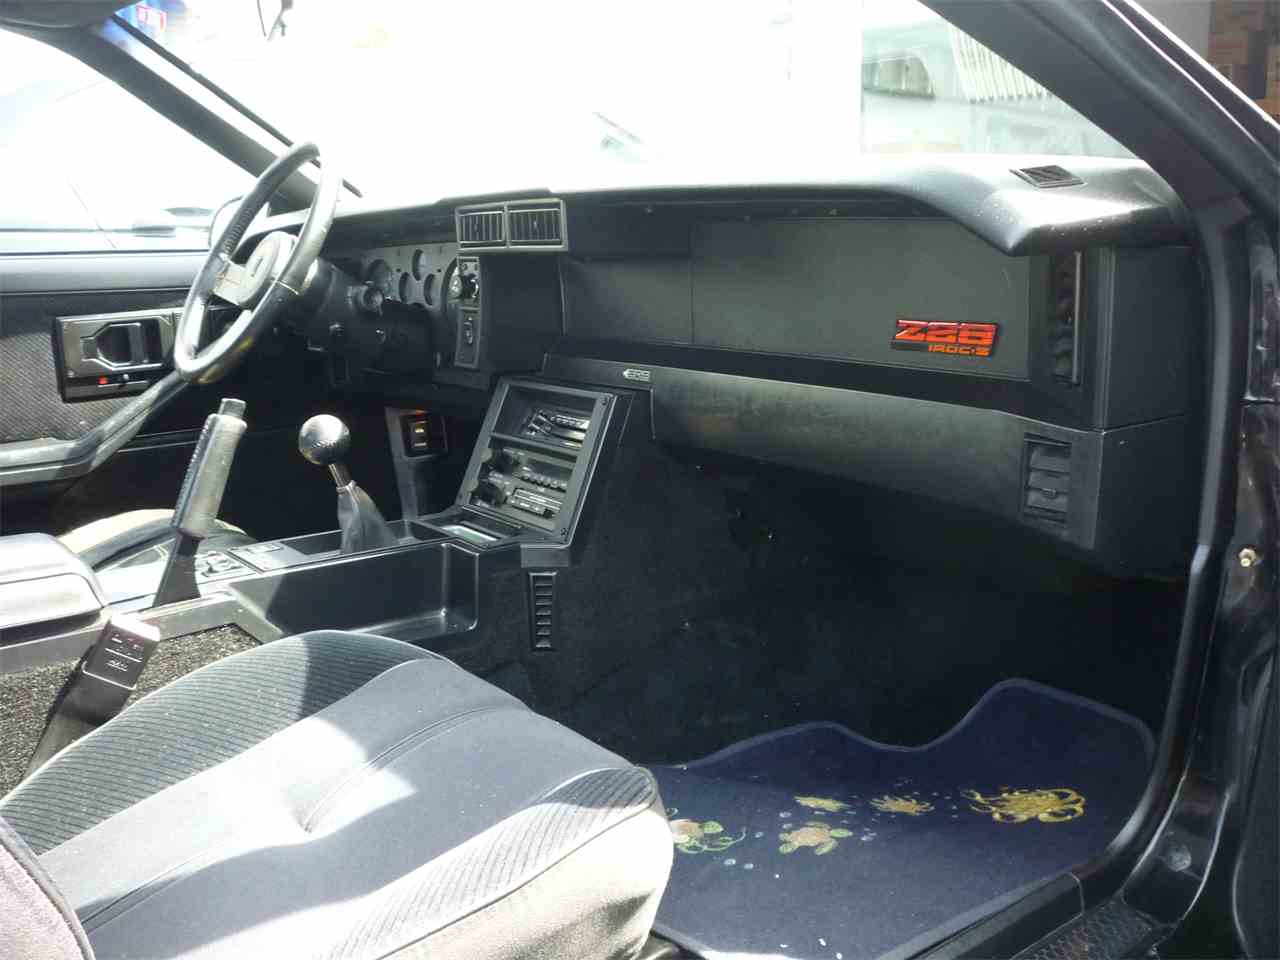 Large Picture of '86 Chevrolet Camaro IROC-Z - $12,000.00 Offered by a Private Seller - GK6I